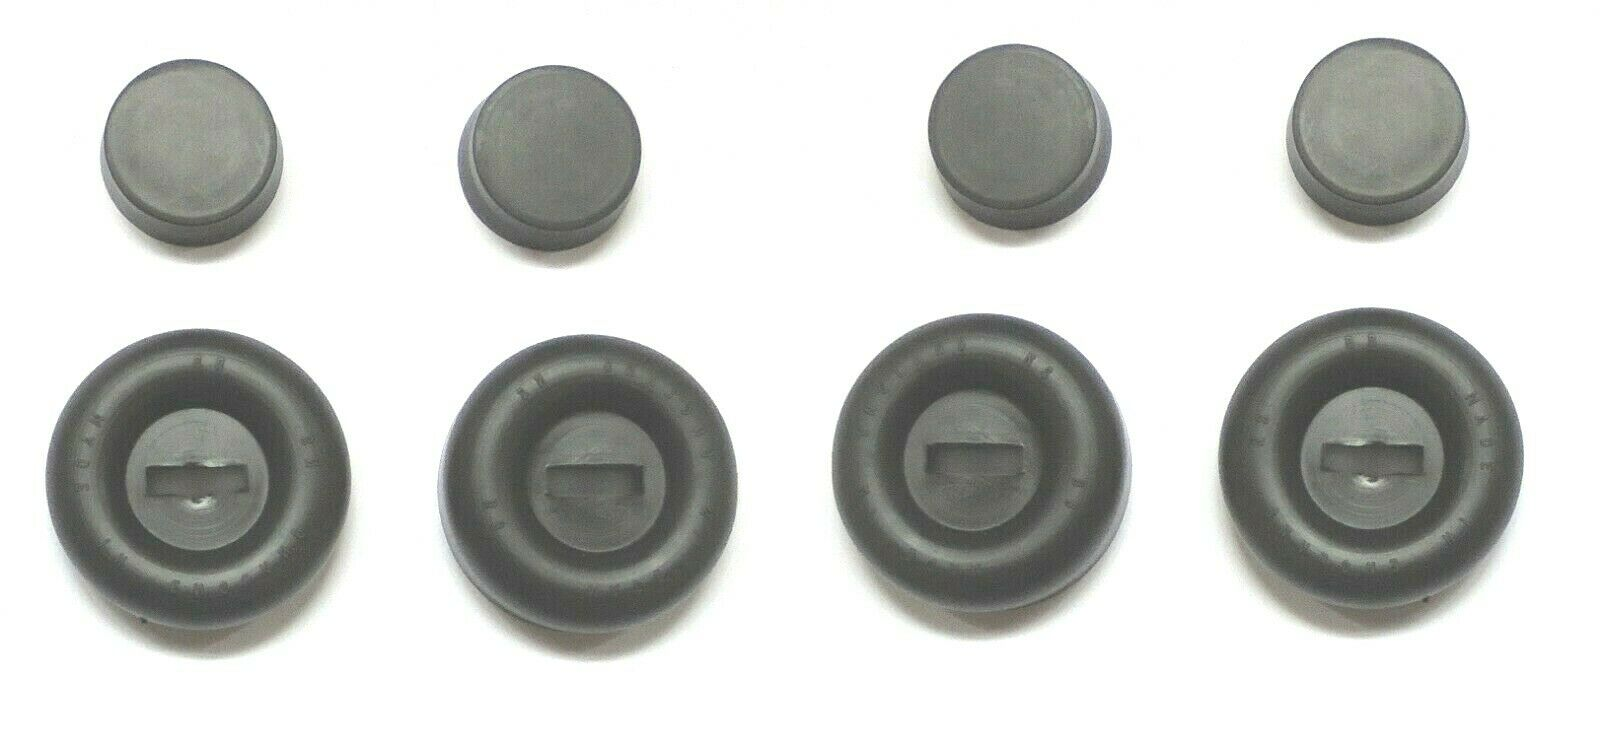 FRONT BRAKE WHEEL CYLINDER REPAIR SEALS KITS x4 (Austin Gipsy) (** M15 LWB **) (From 1962- 68)